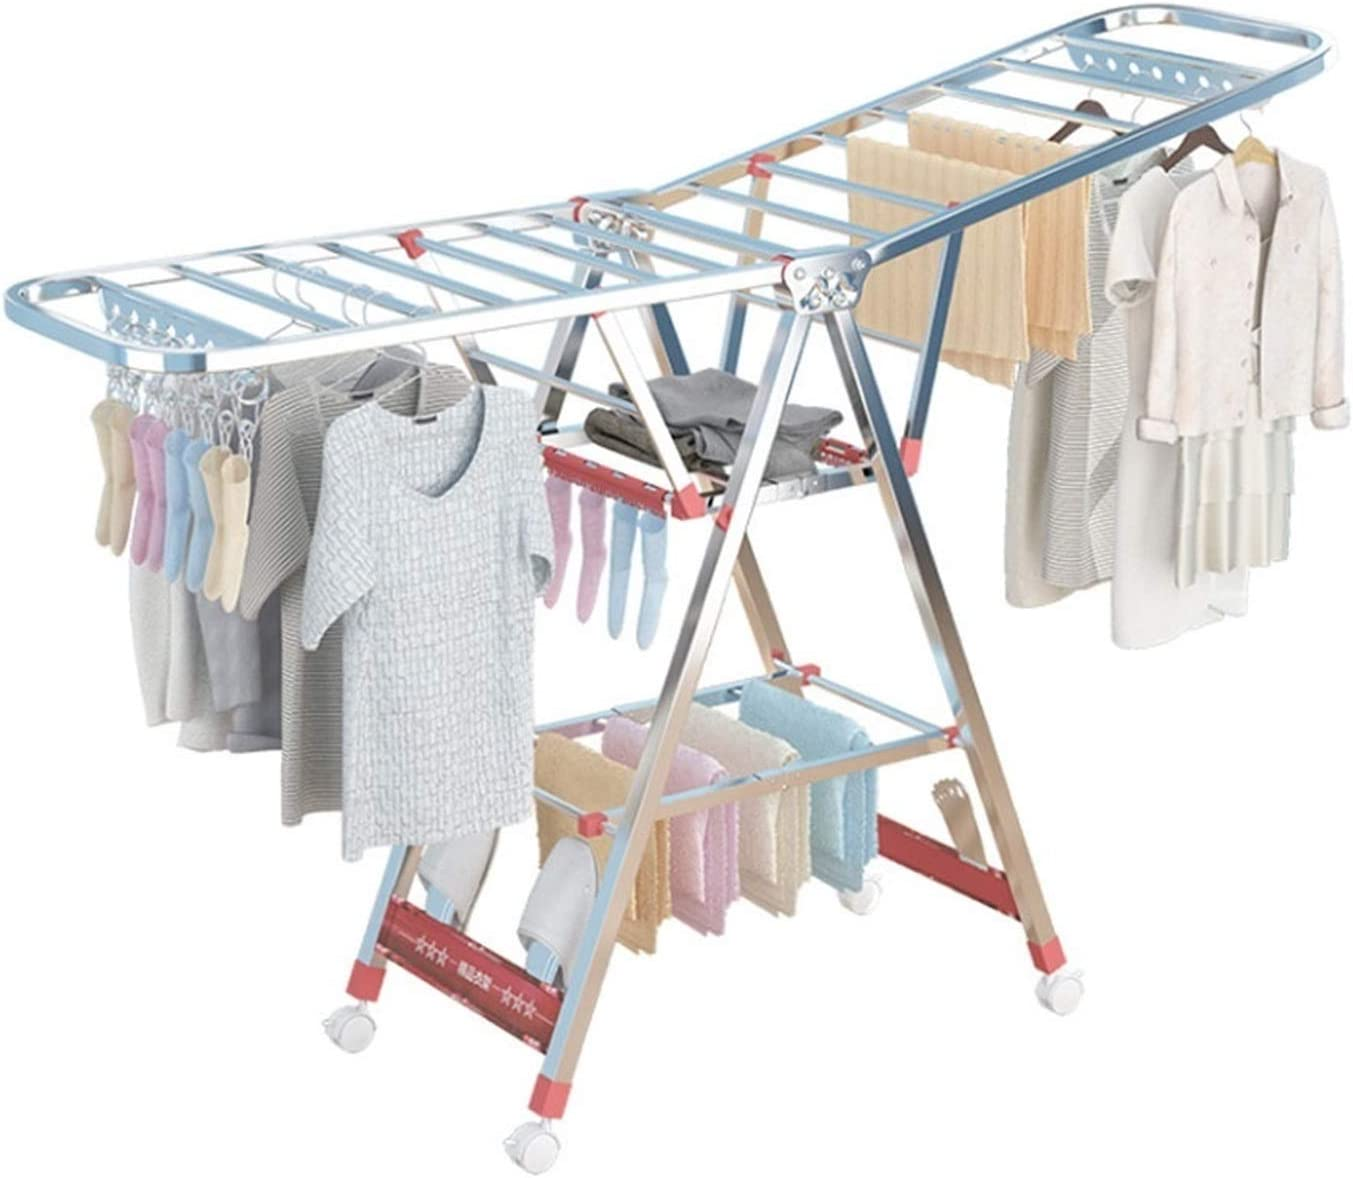 XIAOQIU Clothes Drying Rack for Laundry 3 Airer Max 85% OFF Tier online shopping